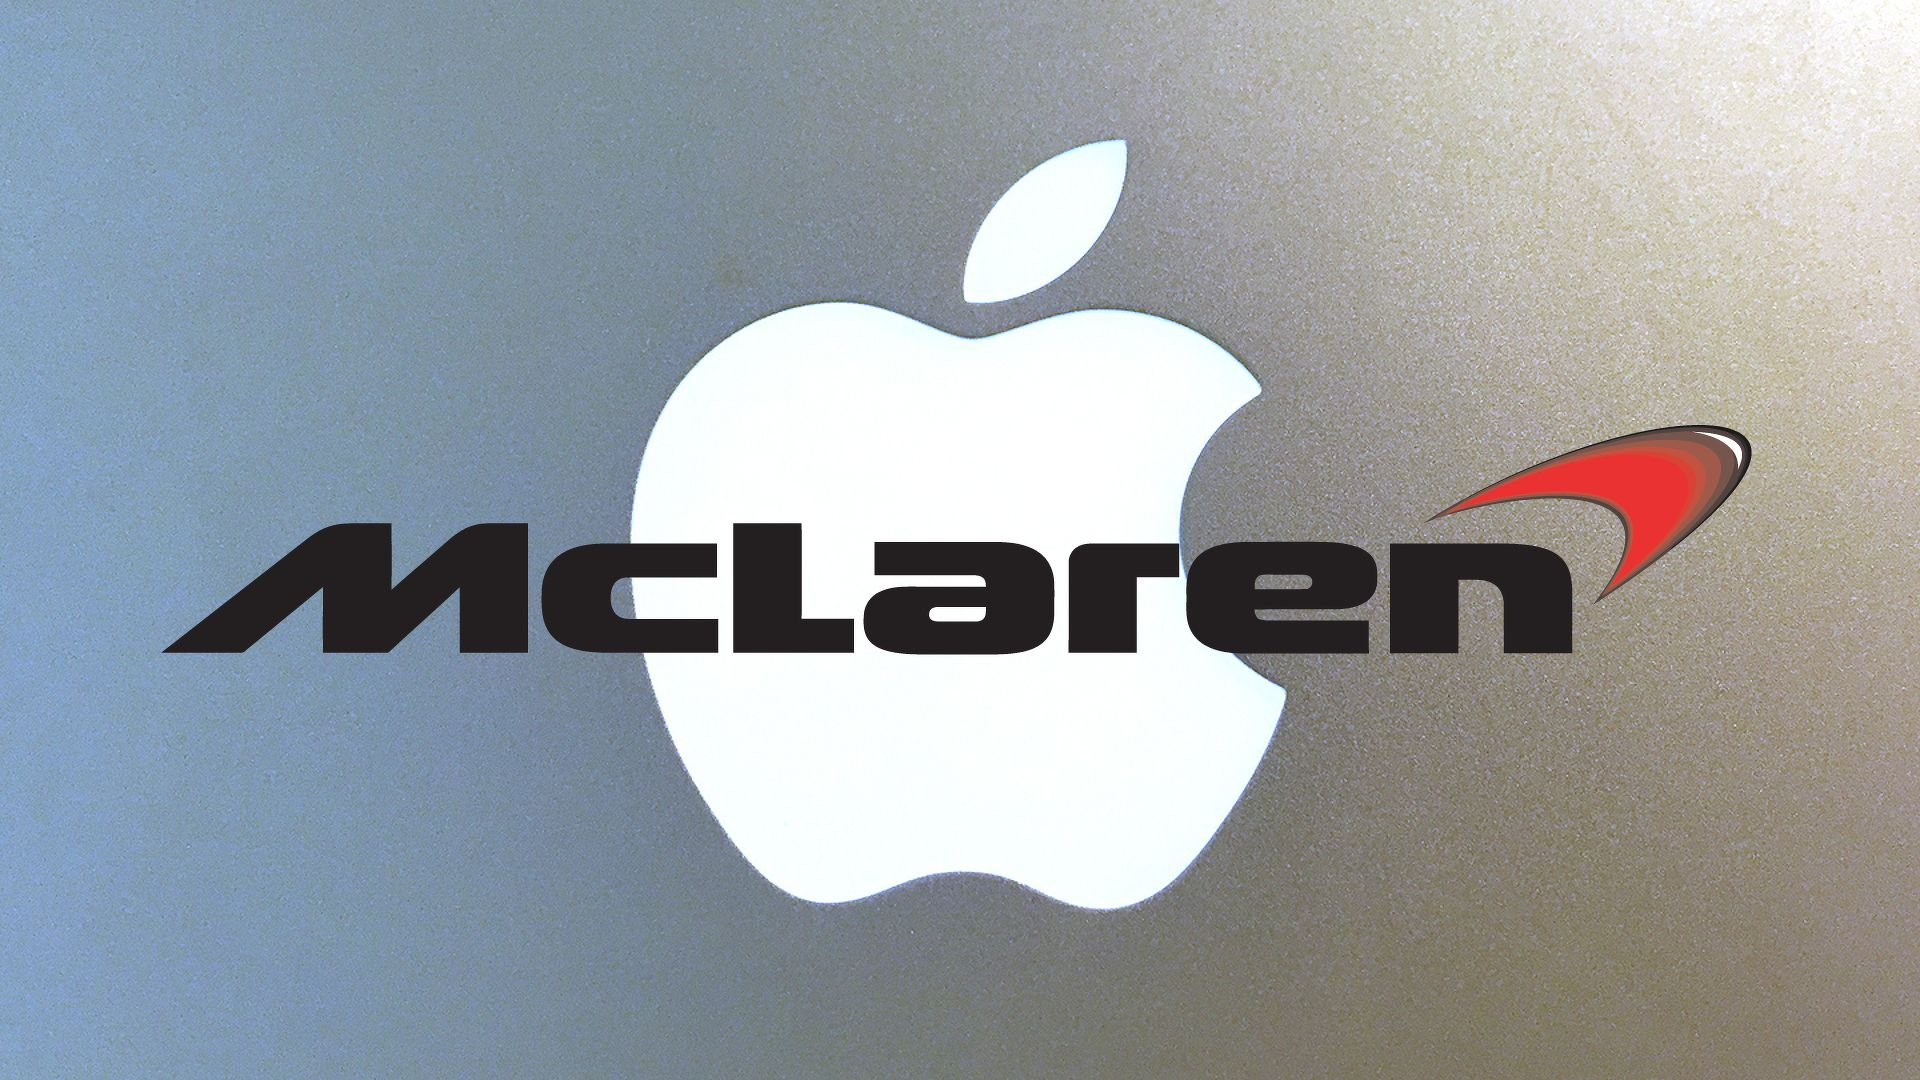 McLaren Logo - Apple linked with McLaren takeover